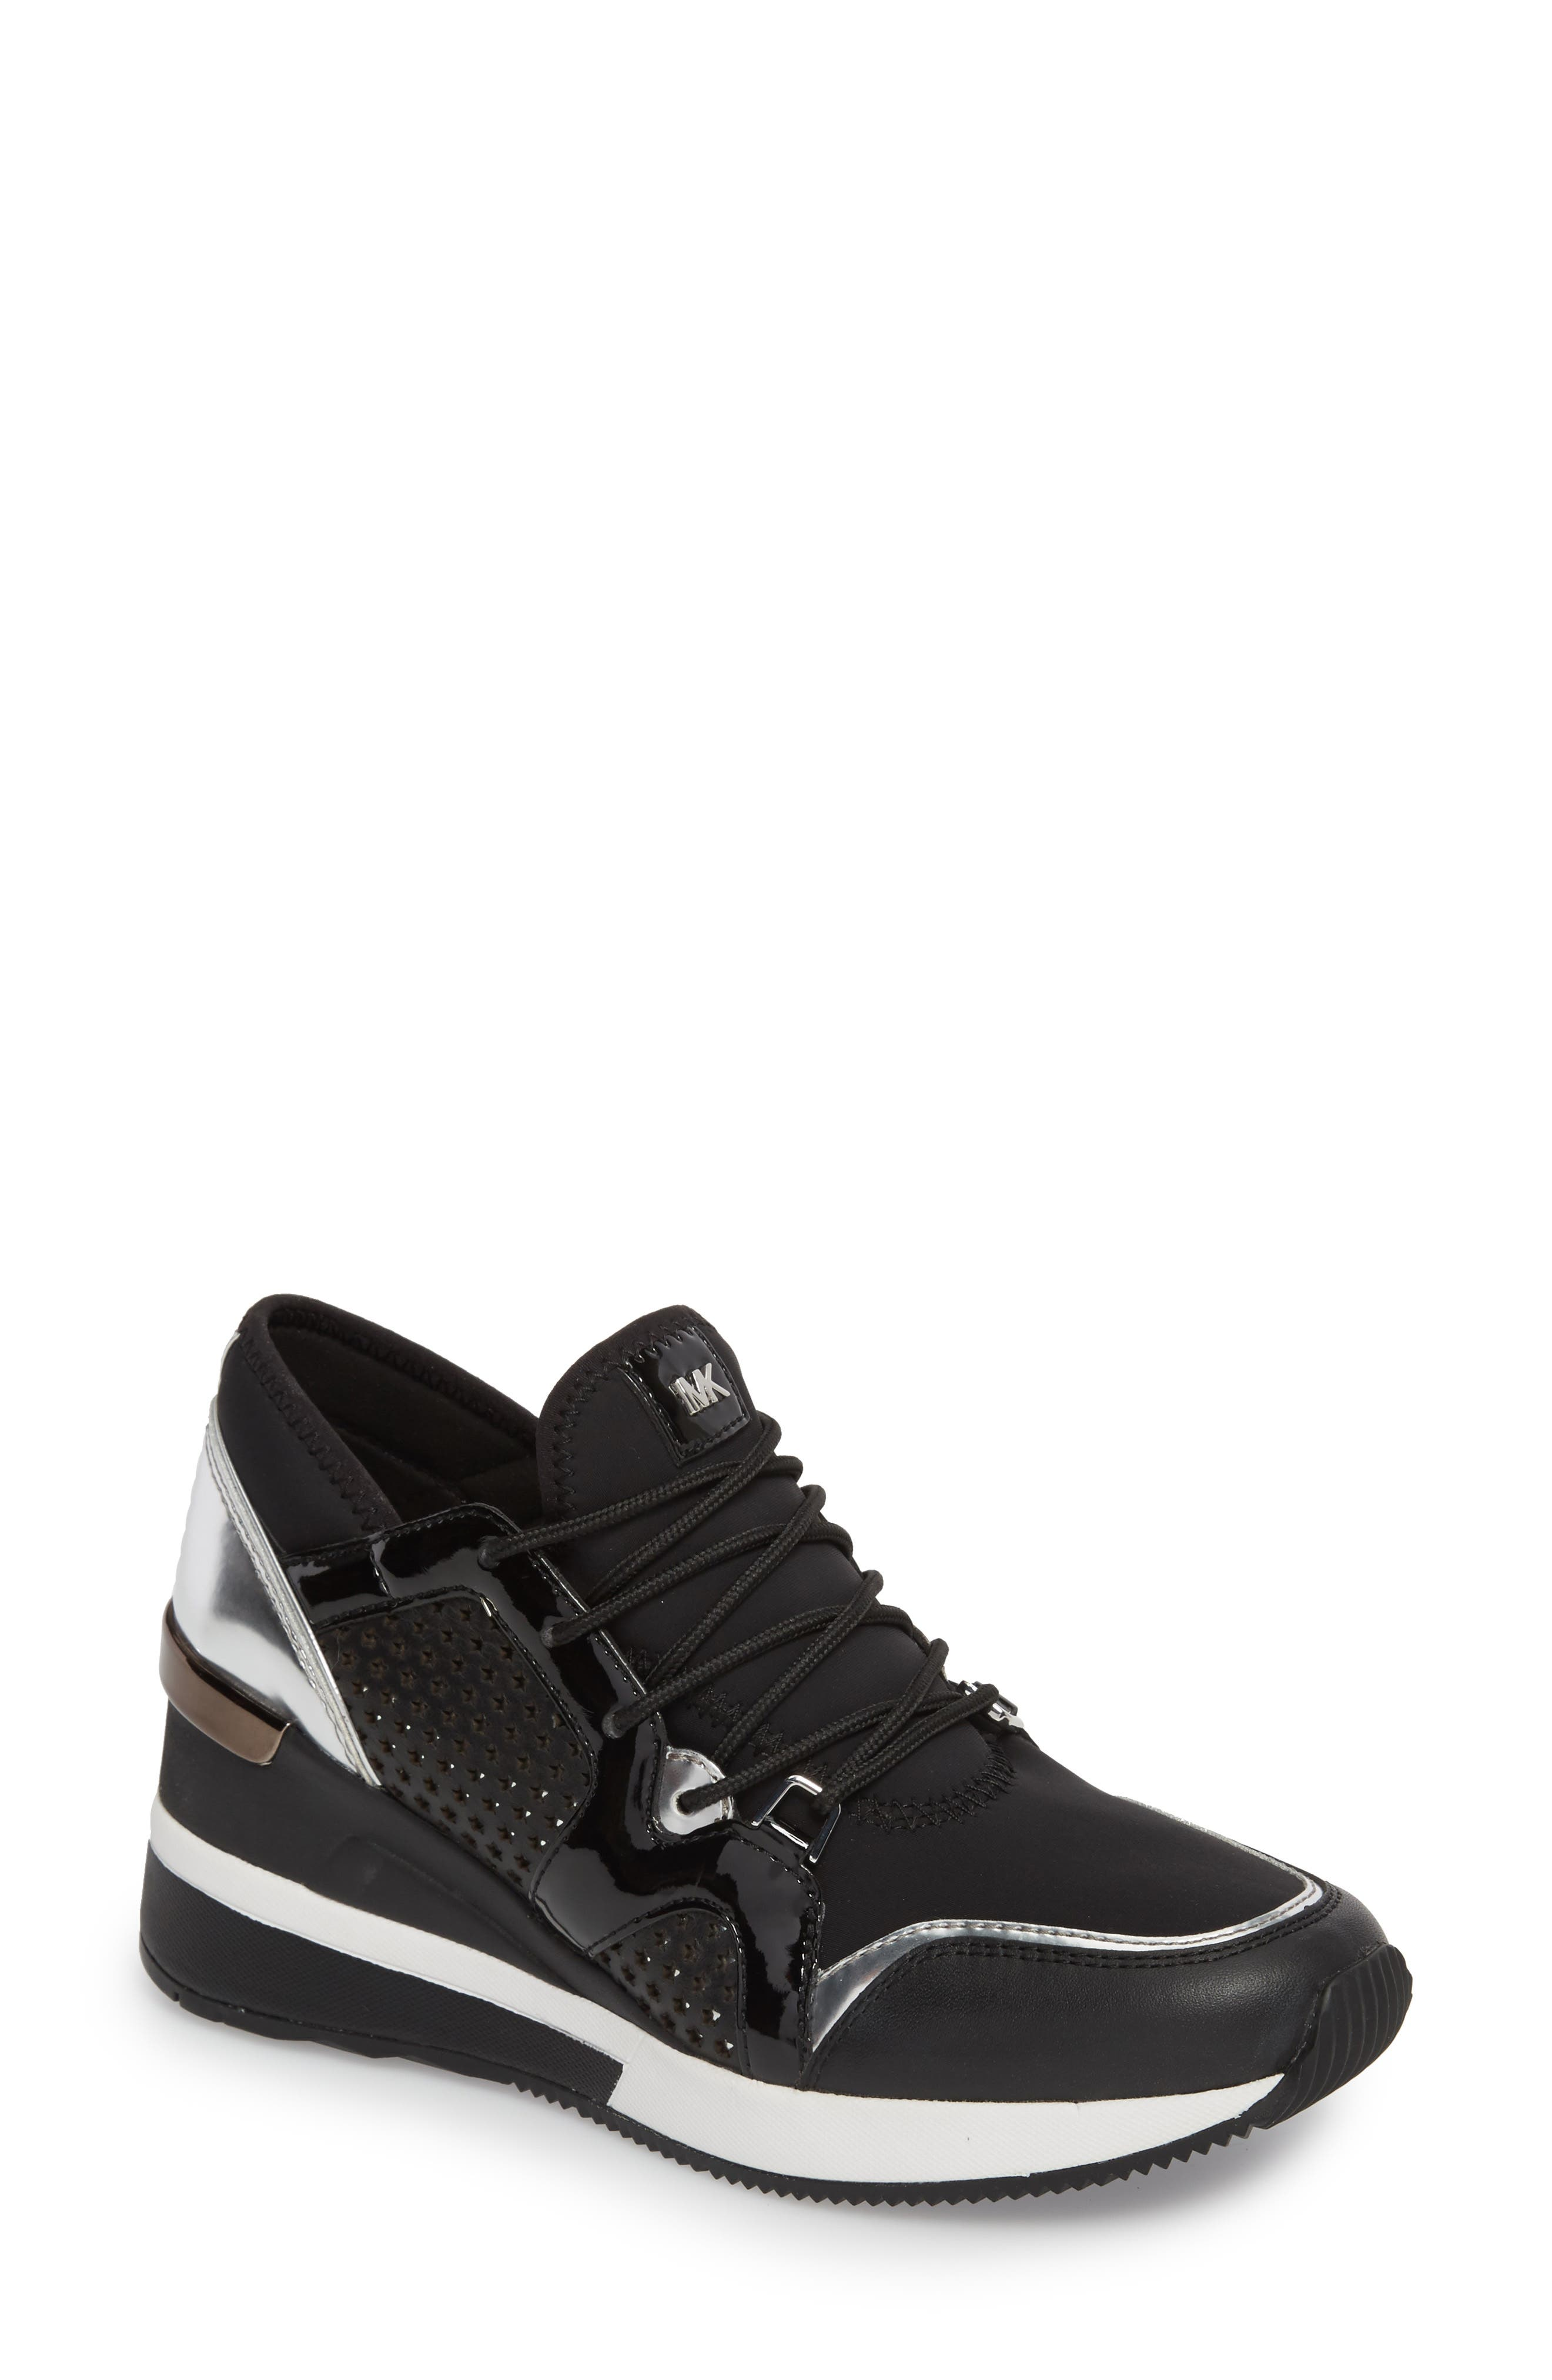 Scout Wedge Sneaker,                             Main thumbnail 1, color,                             002